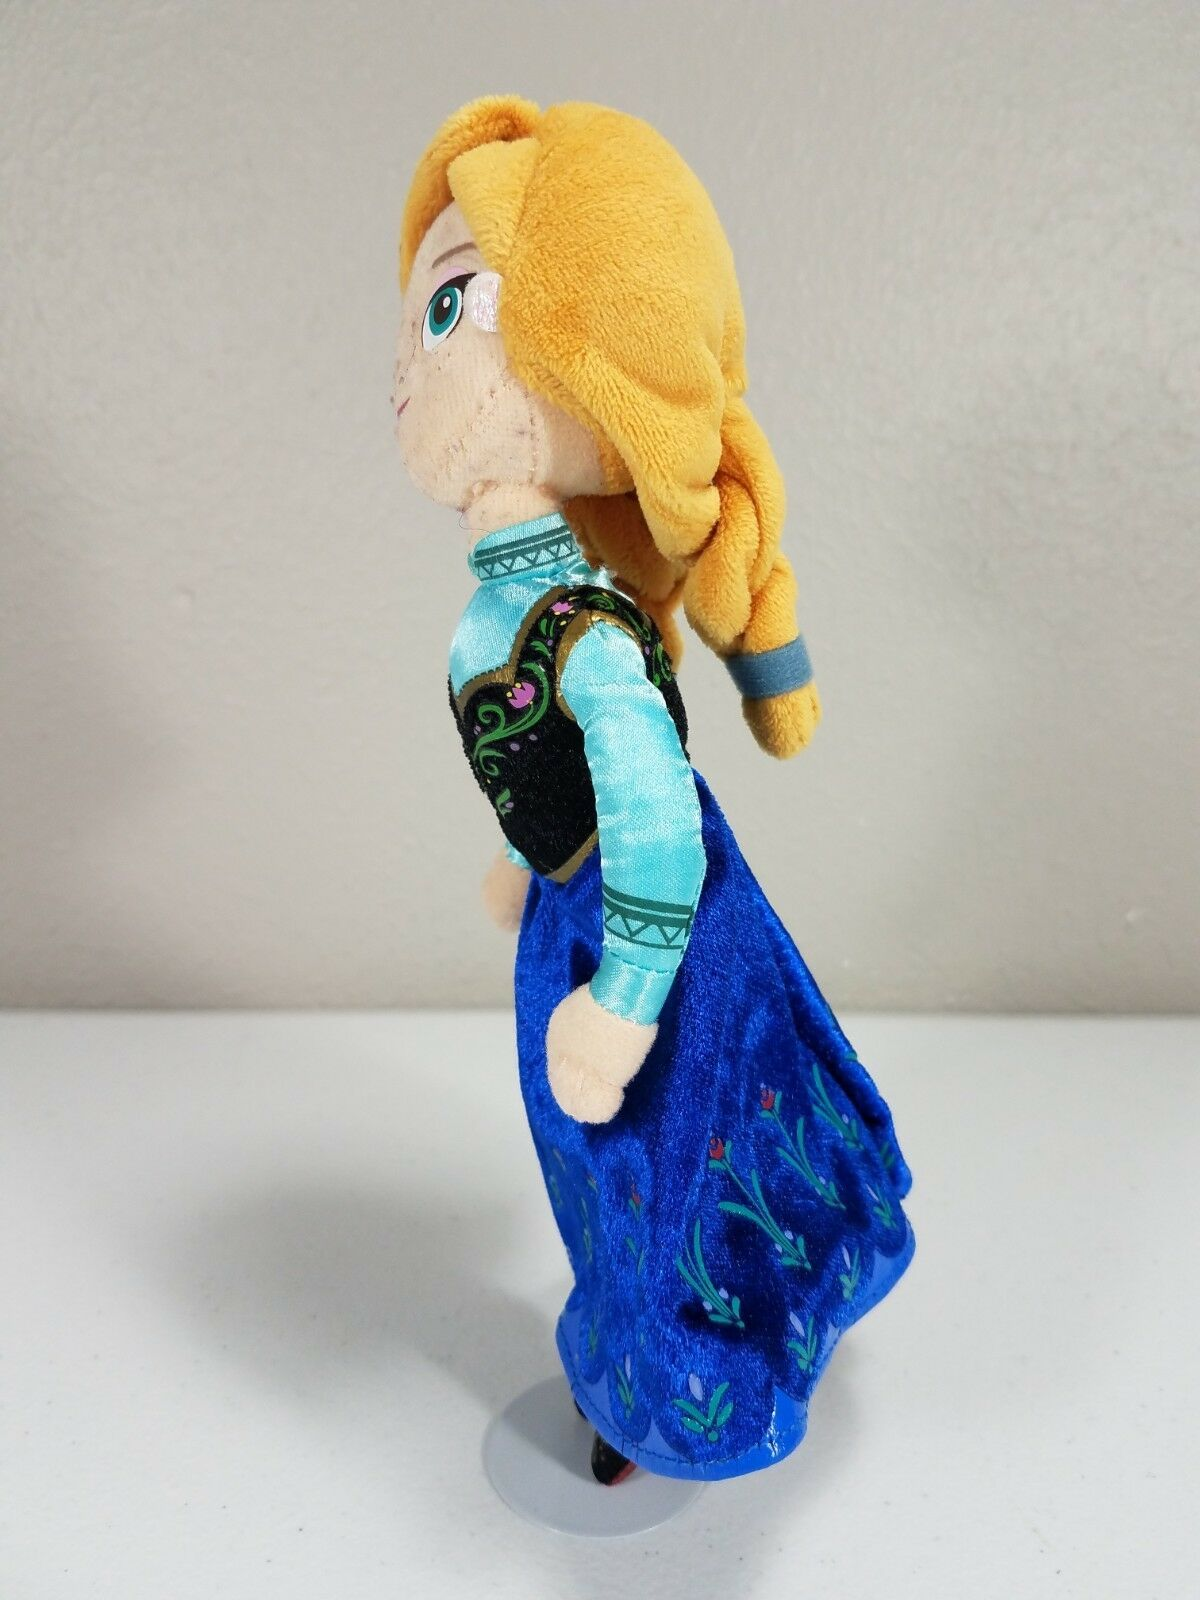 Disney's Frozen - Anna Plush Doll